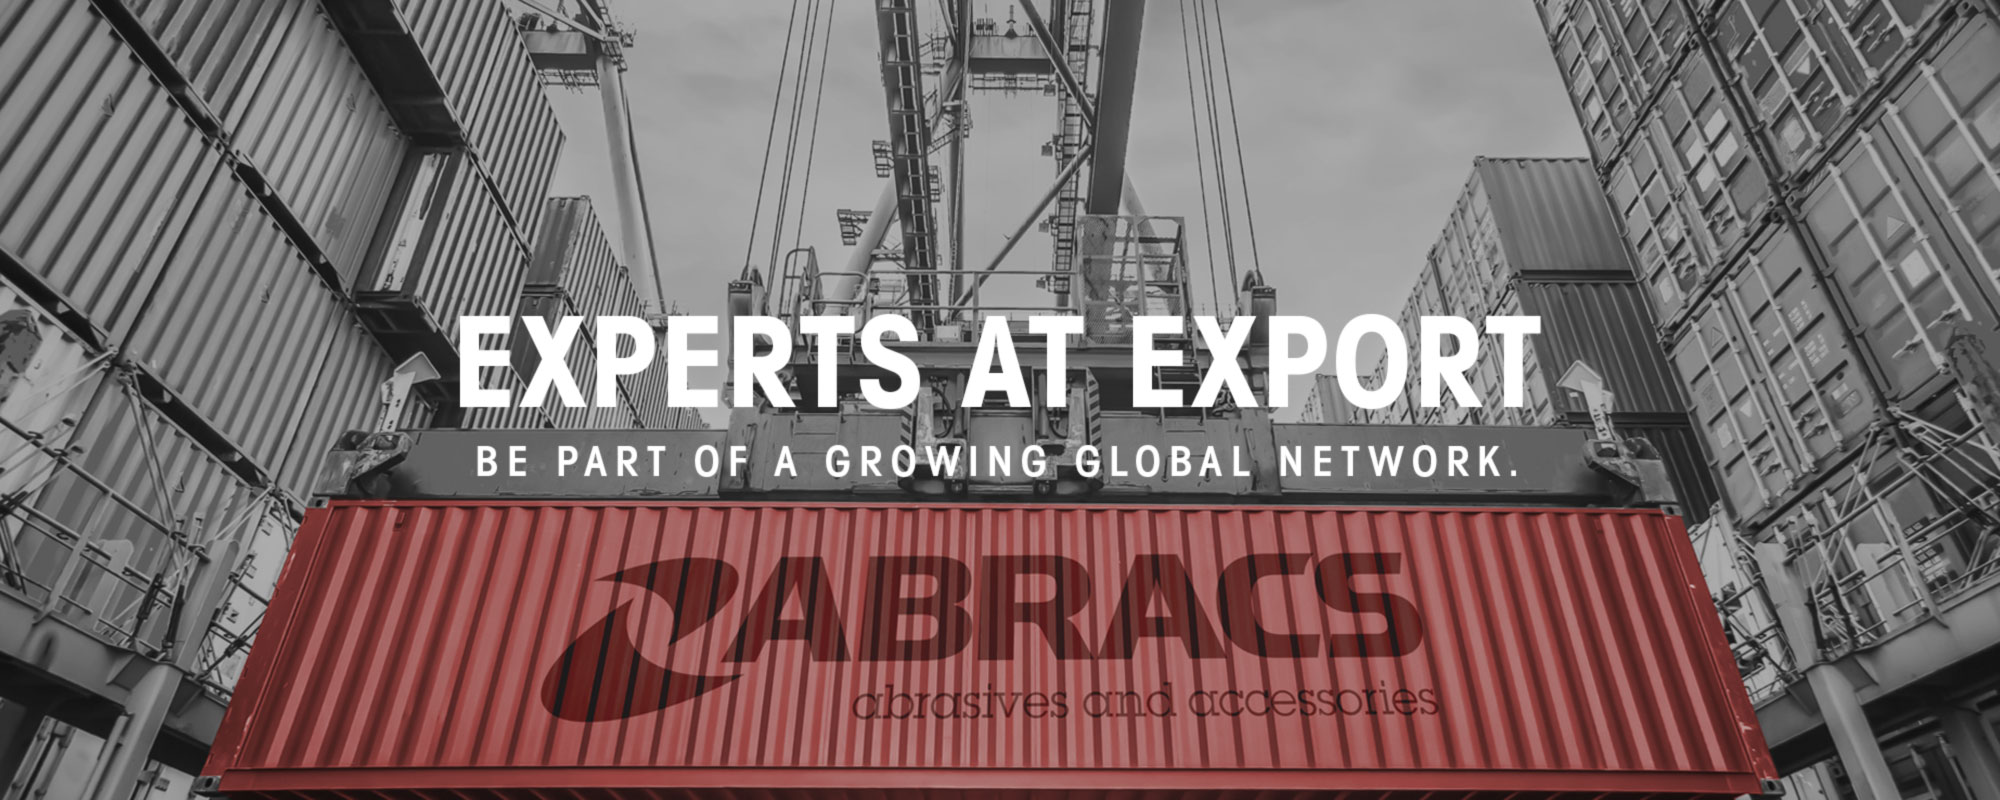 Experts At Export, be part of a growing global network